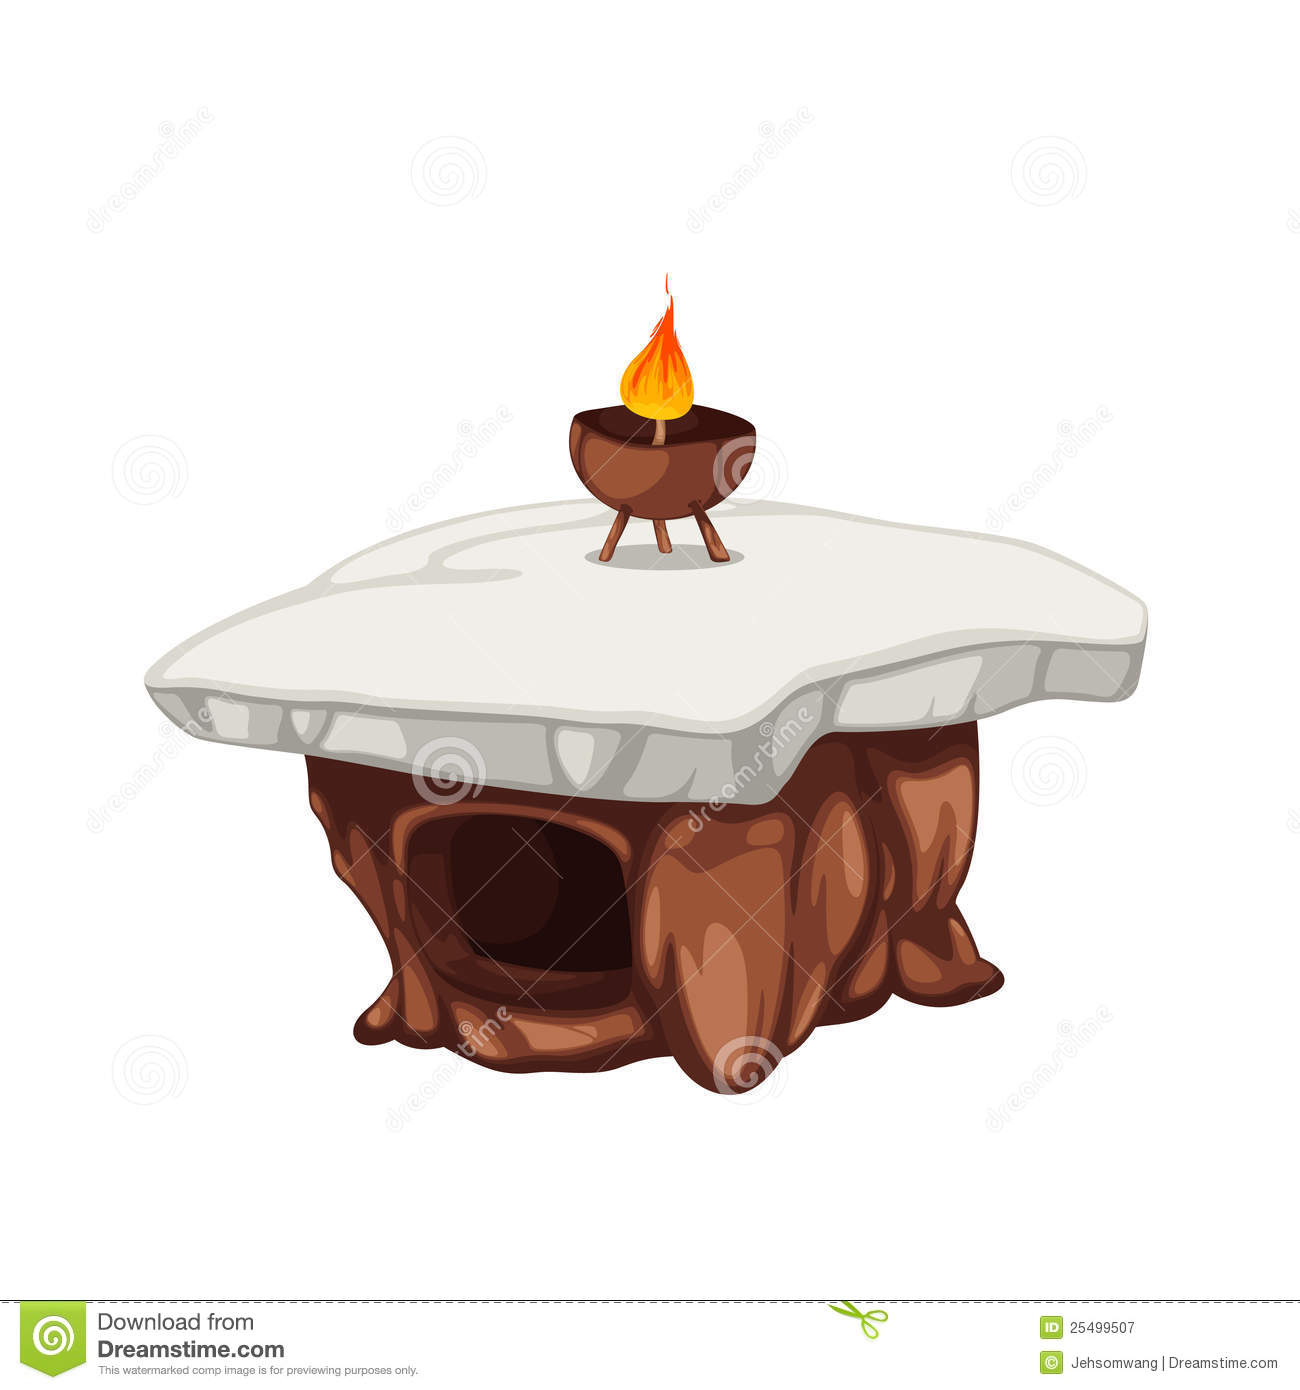 Stone table clipart.